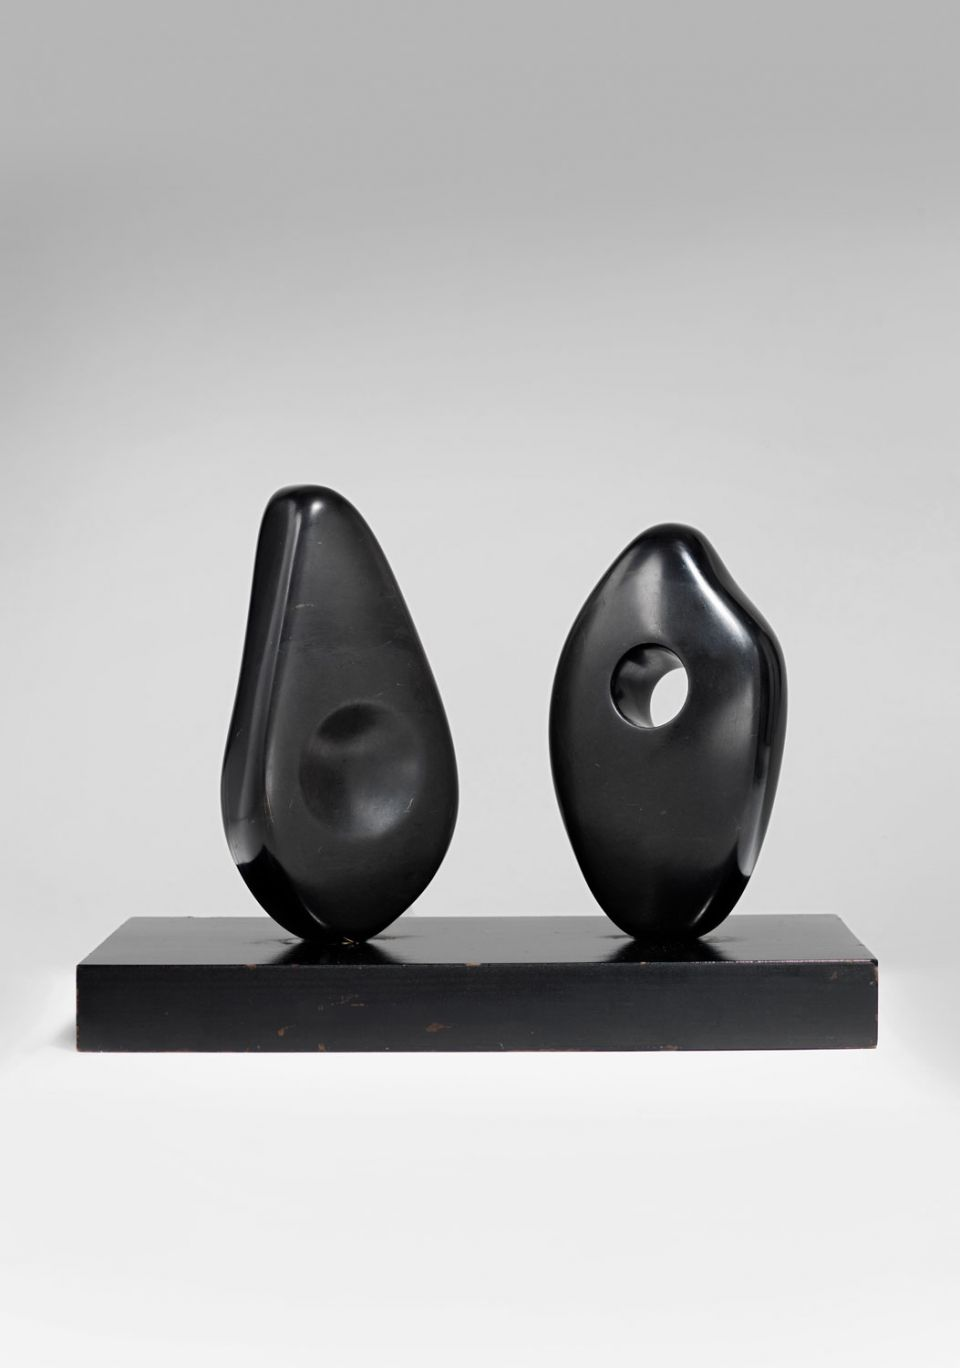 Barbara Hepworth 'Two Forms (Orkney)' (1967). Acquired by The Pier Arts Centre